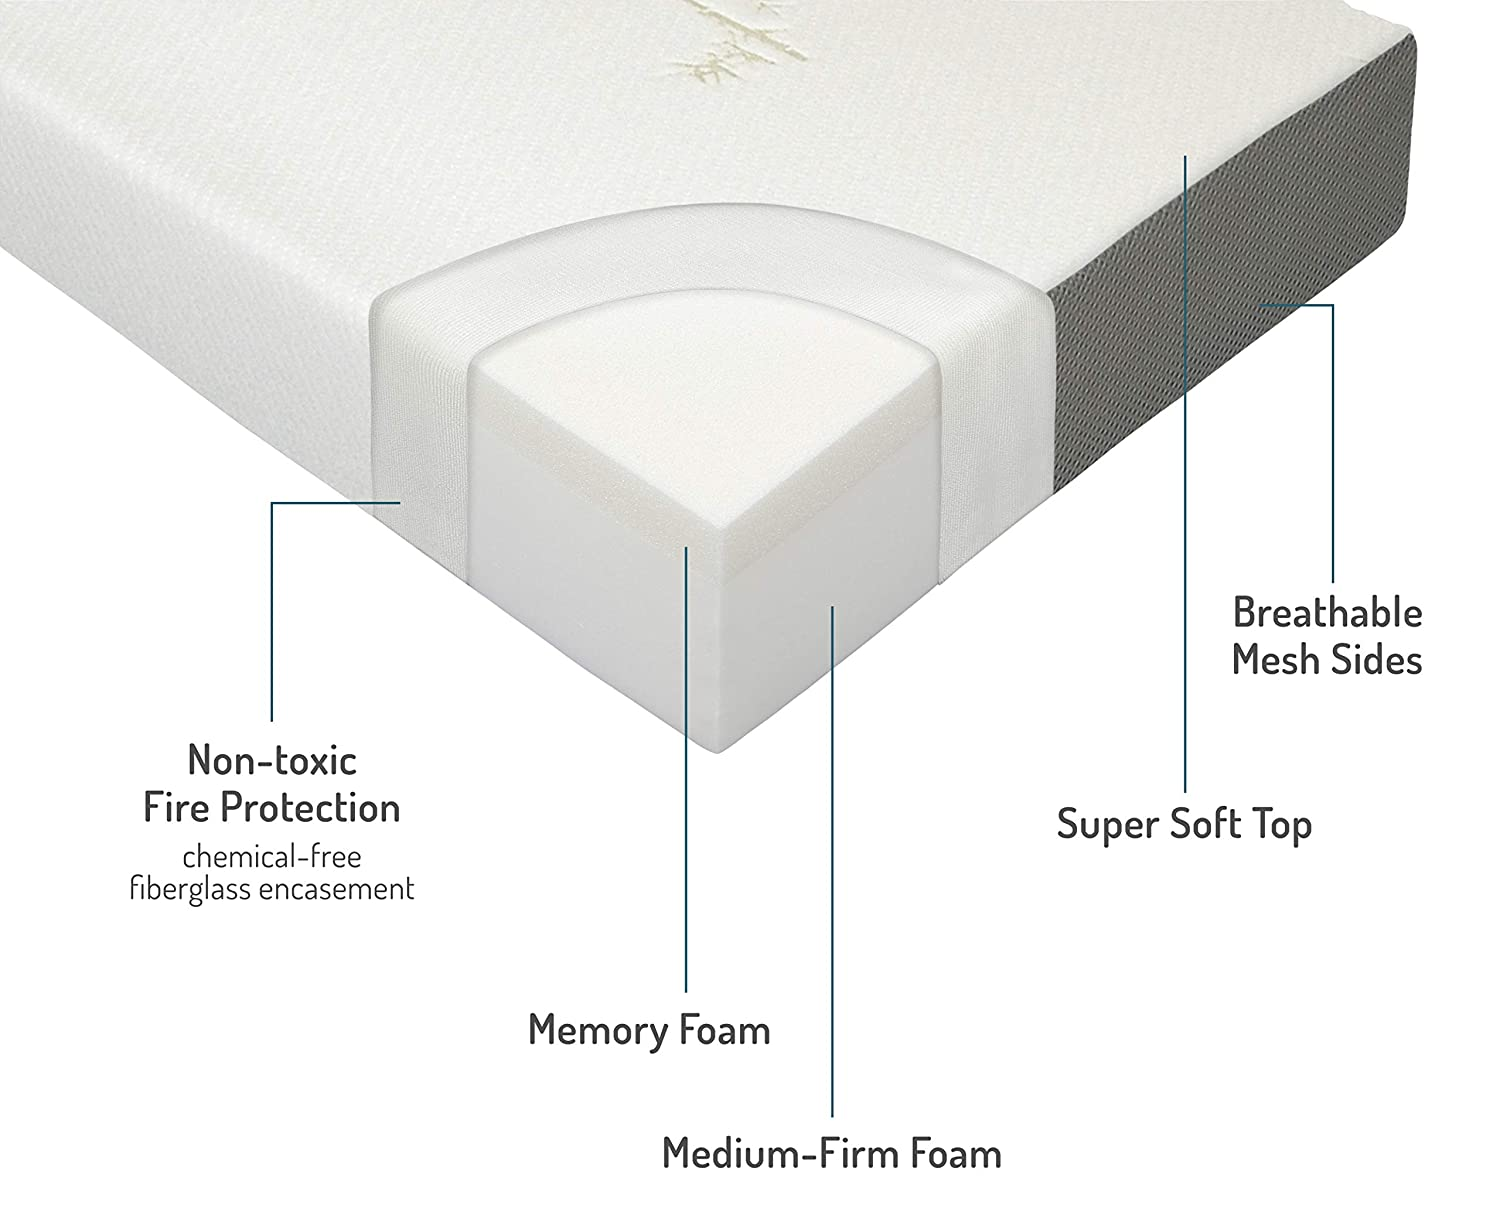 Full Milliard 6-Inch Memory Foam Tri-fold Mattress with Ultra Soft Removable Cover with Non-Slip Bottom